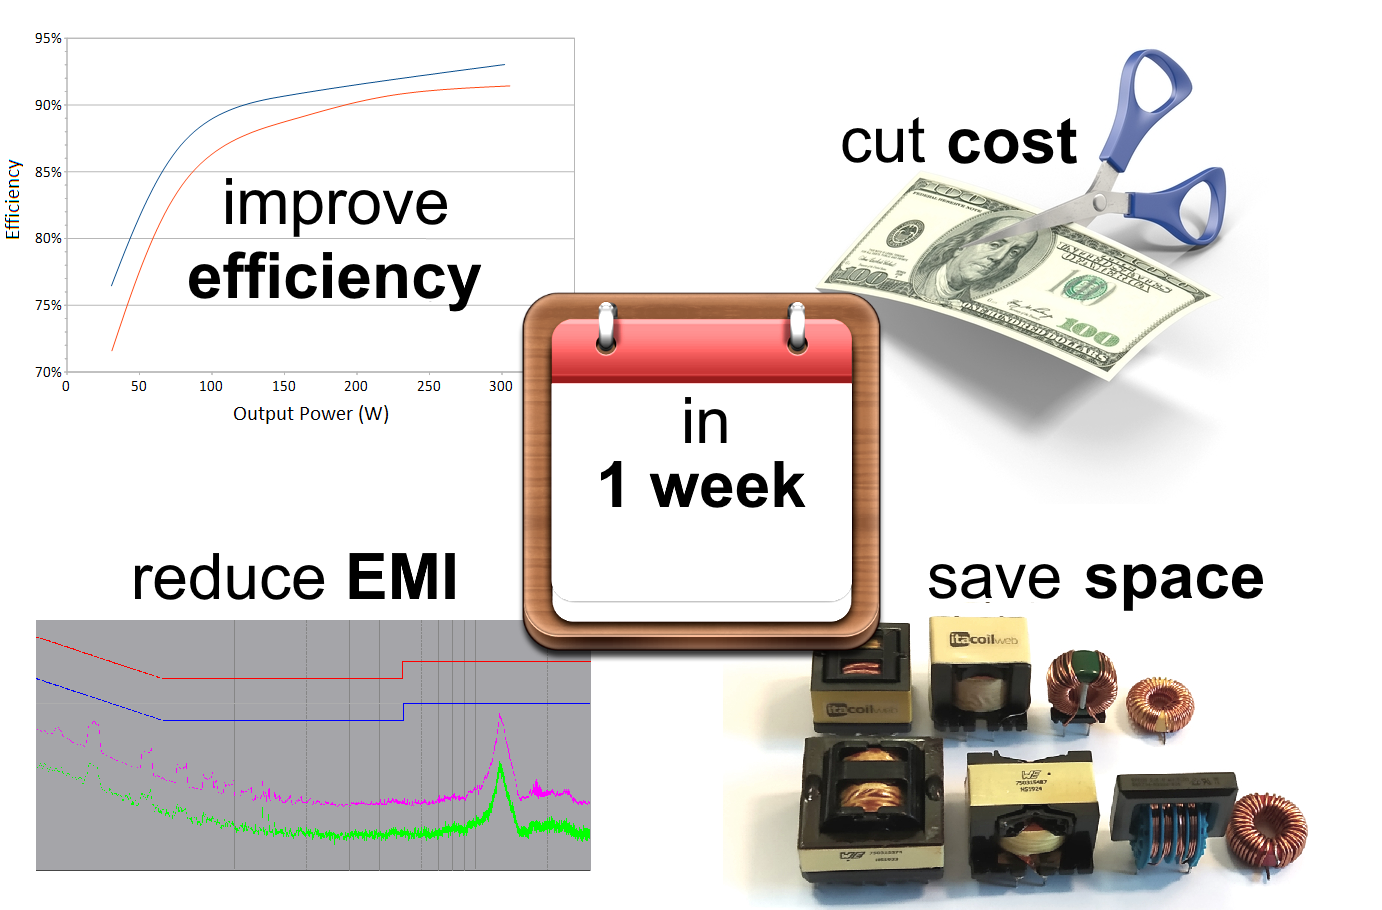 More efficiency, lower cost, less EMI, reduced dimensions, all of this in 7 days!